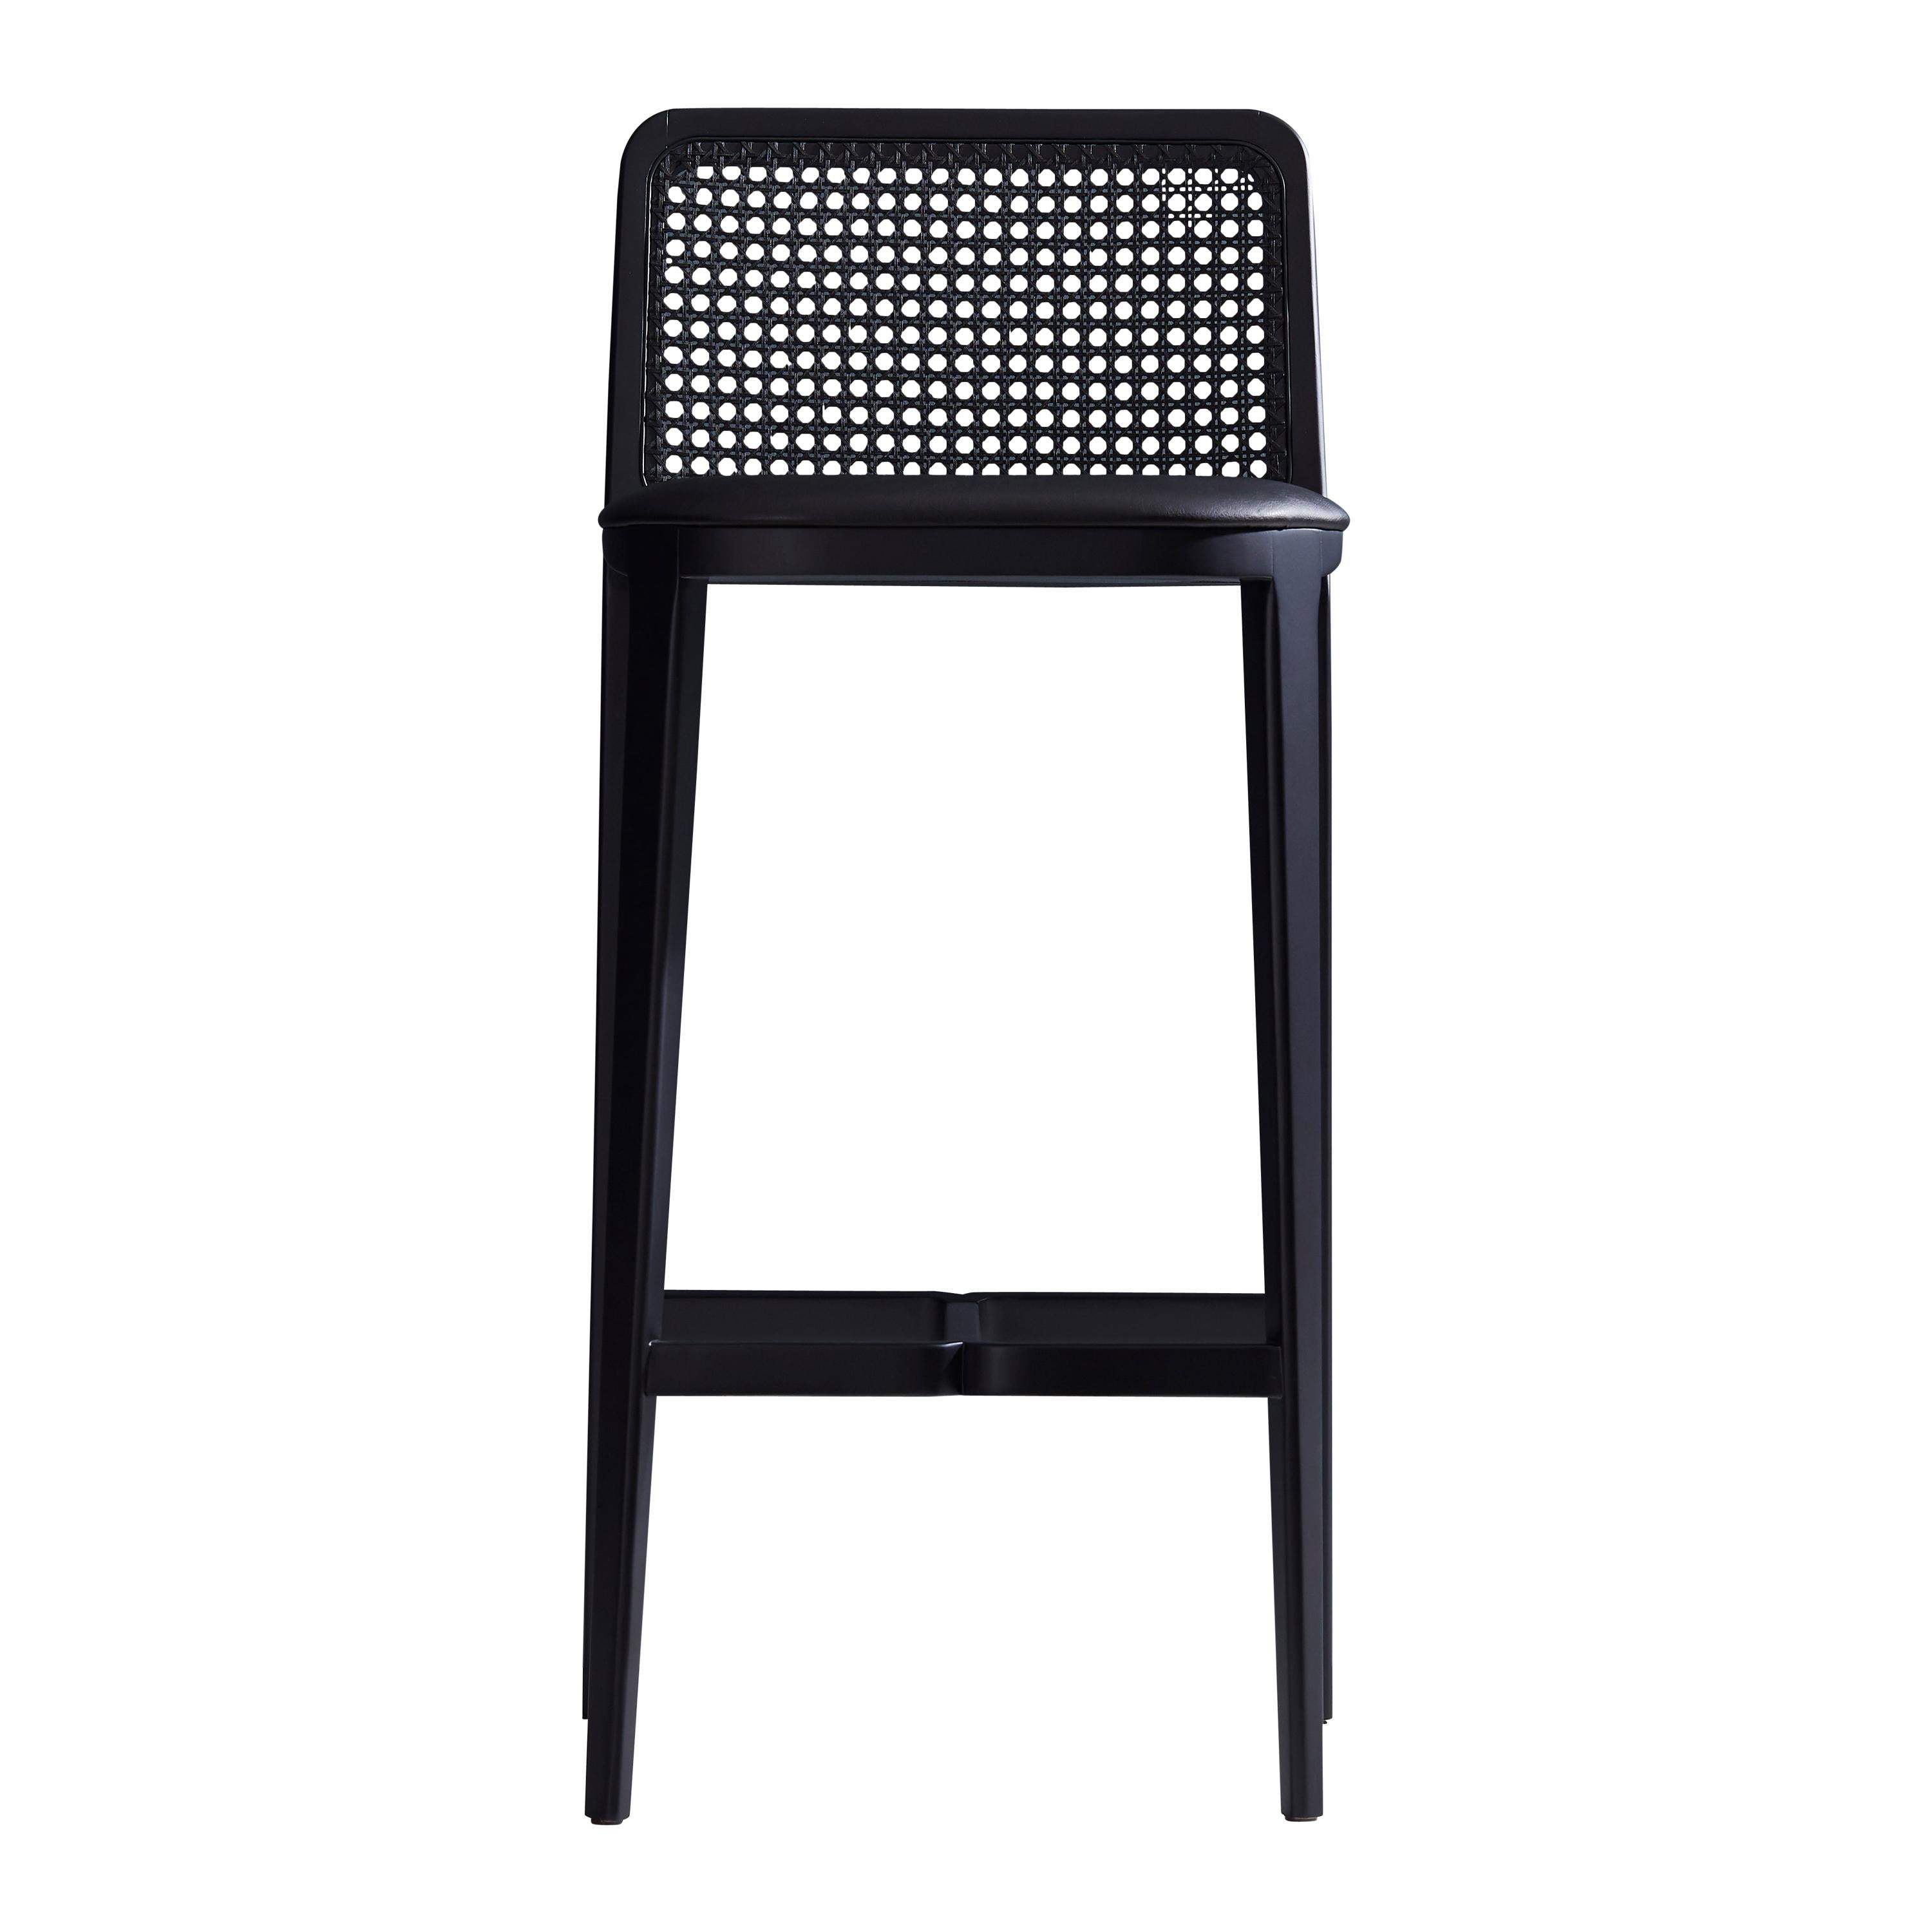 Minimal Style Bar Stool In Solid Wood Textiles Or Leather Seat Black Finish For Sale At 1stdibs